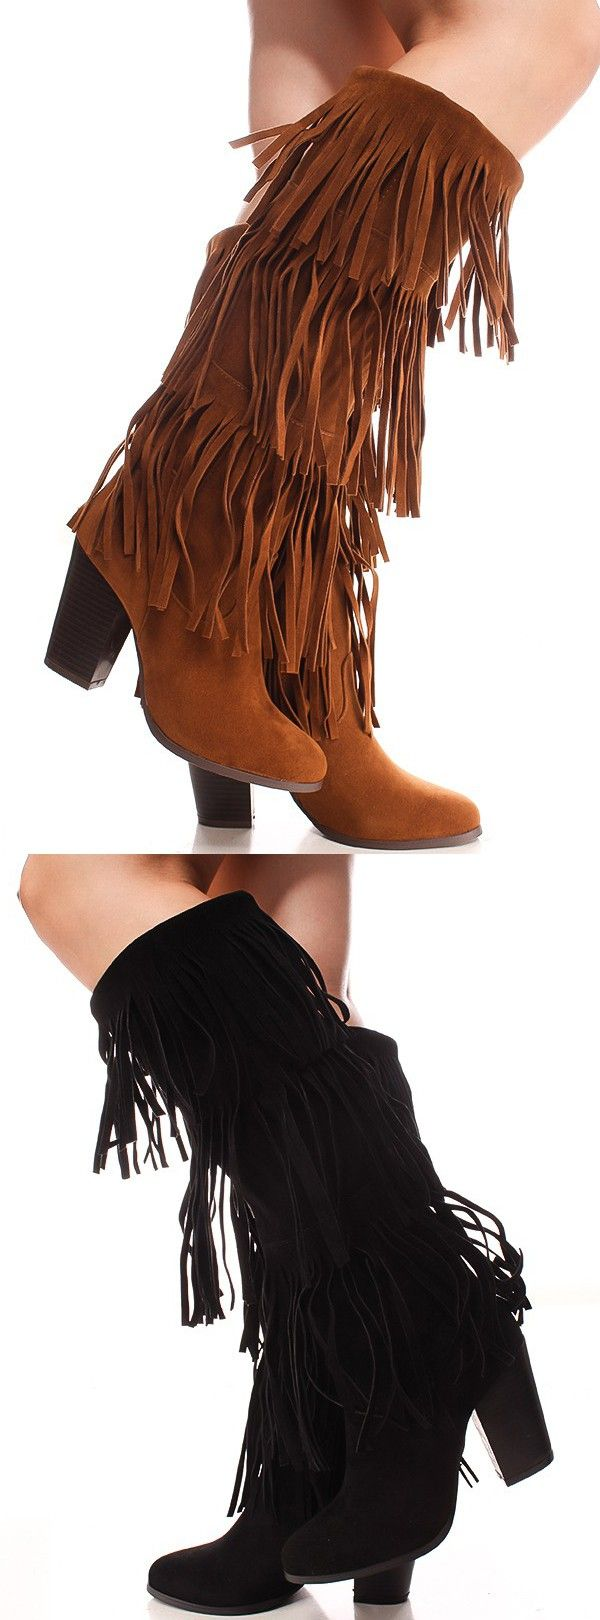 Are you fringe-worthy? These are some sexy vegan suede platform boots featuring a chunky heel, three layers of fringe, and a full-length side zipper closure.